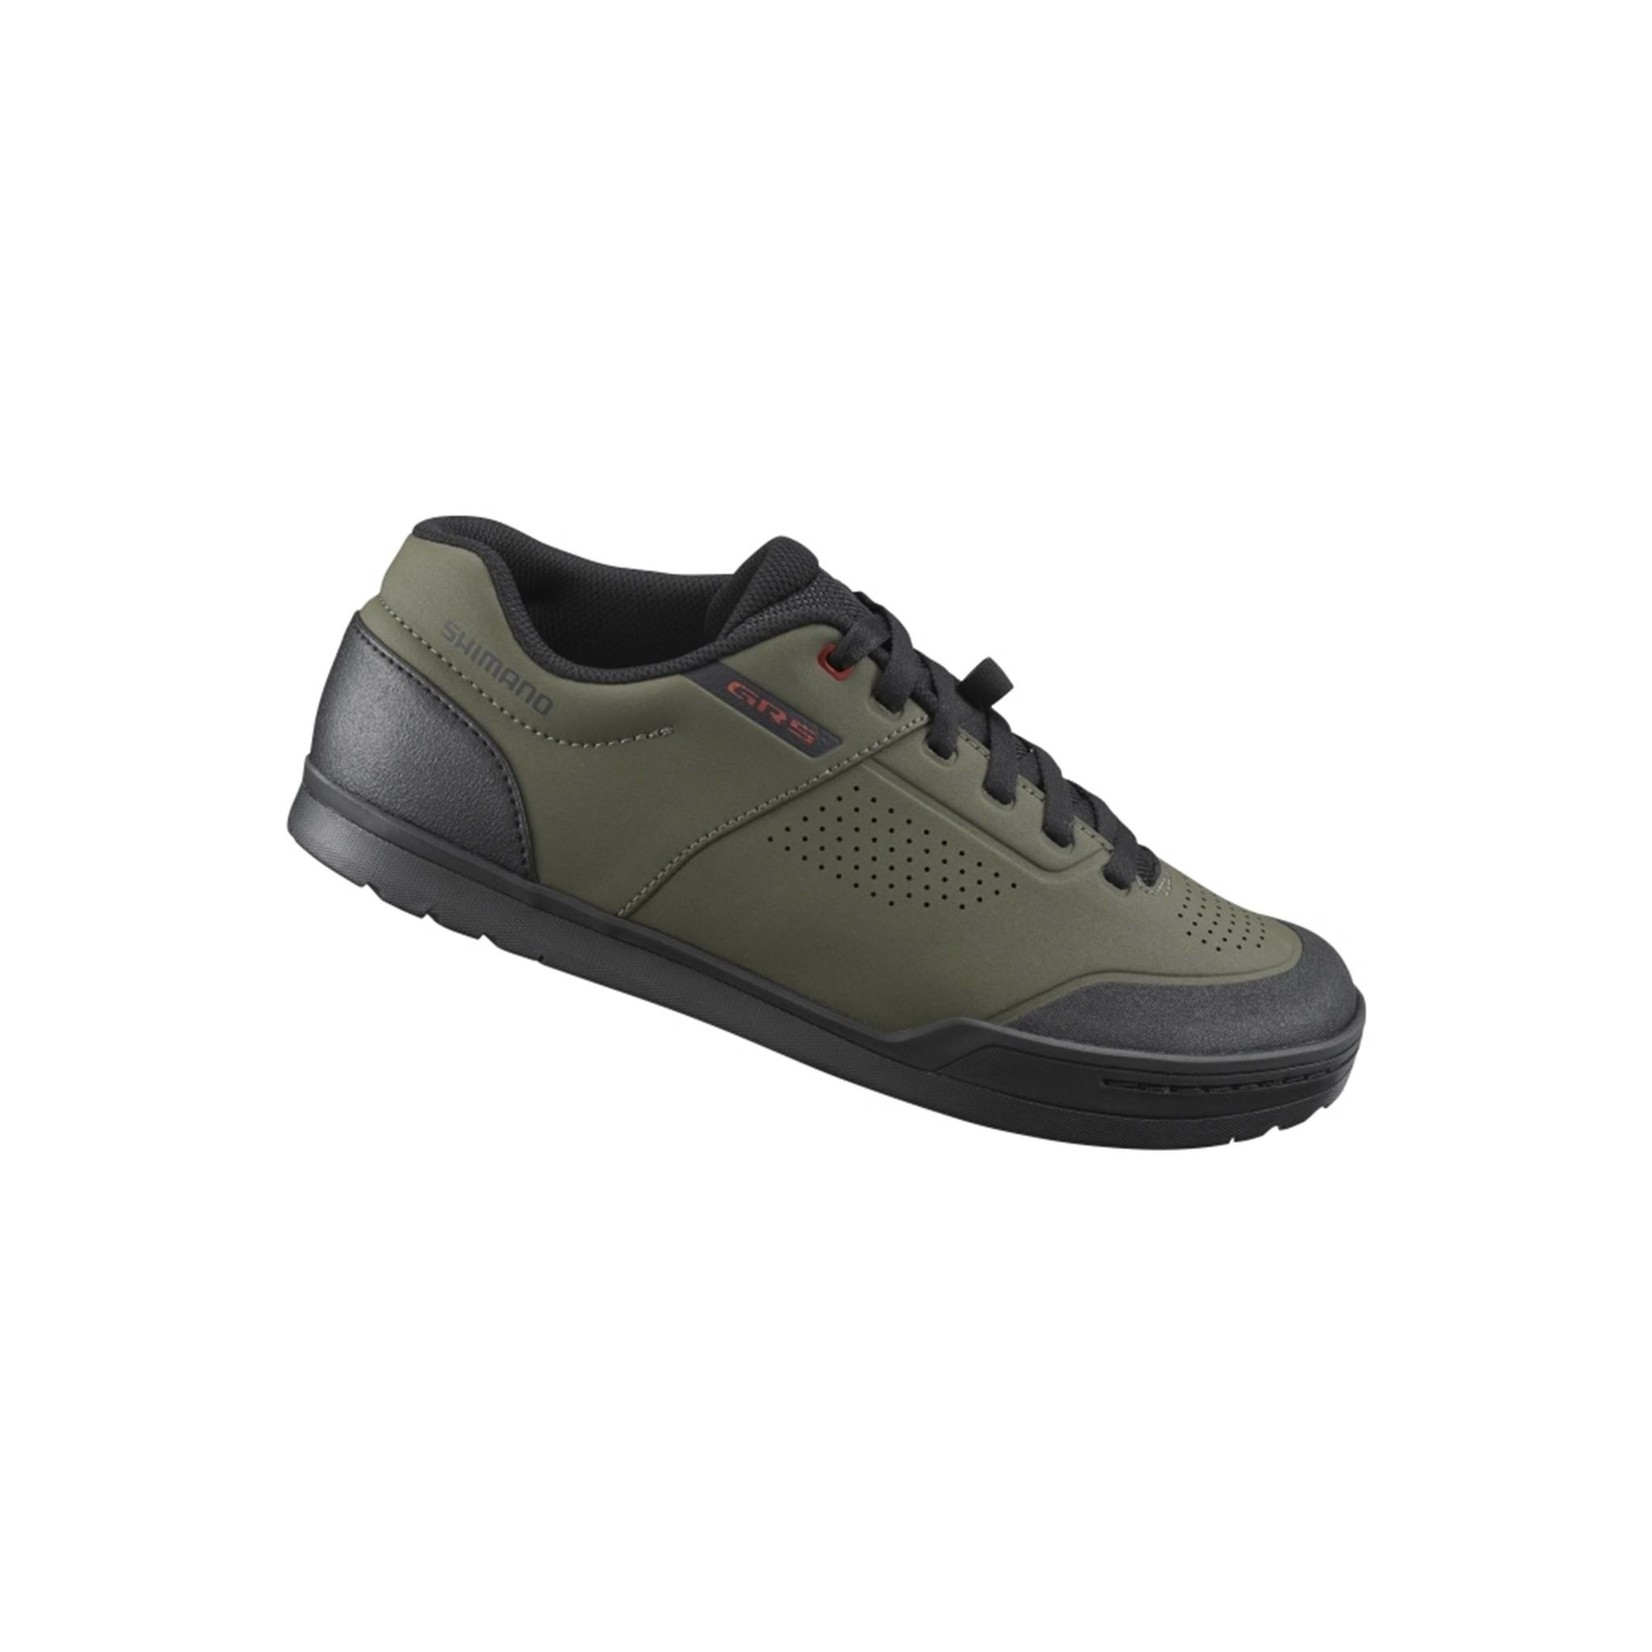 Shimano GR501 Flat Pedal Shoes 43 Olive MY21